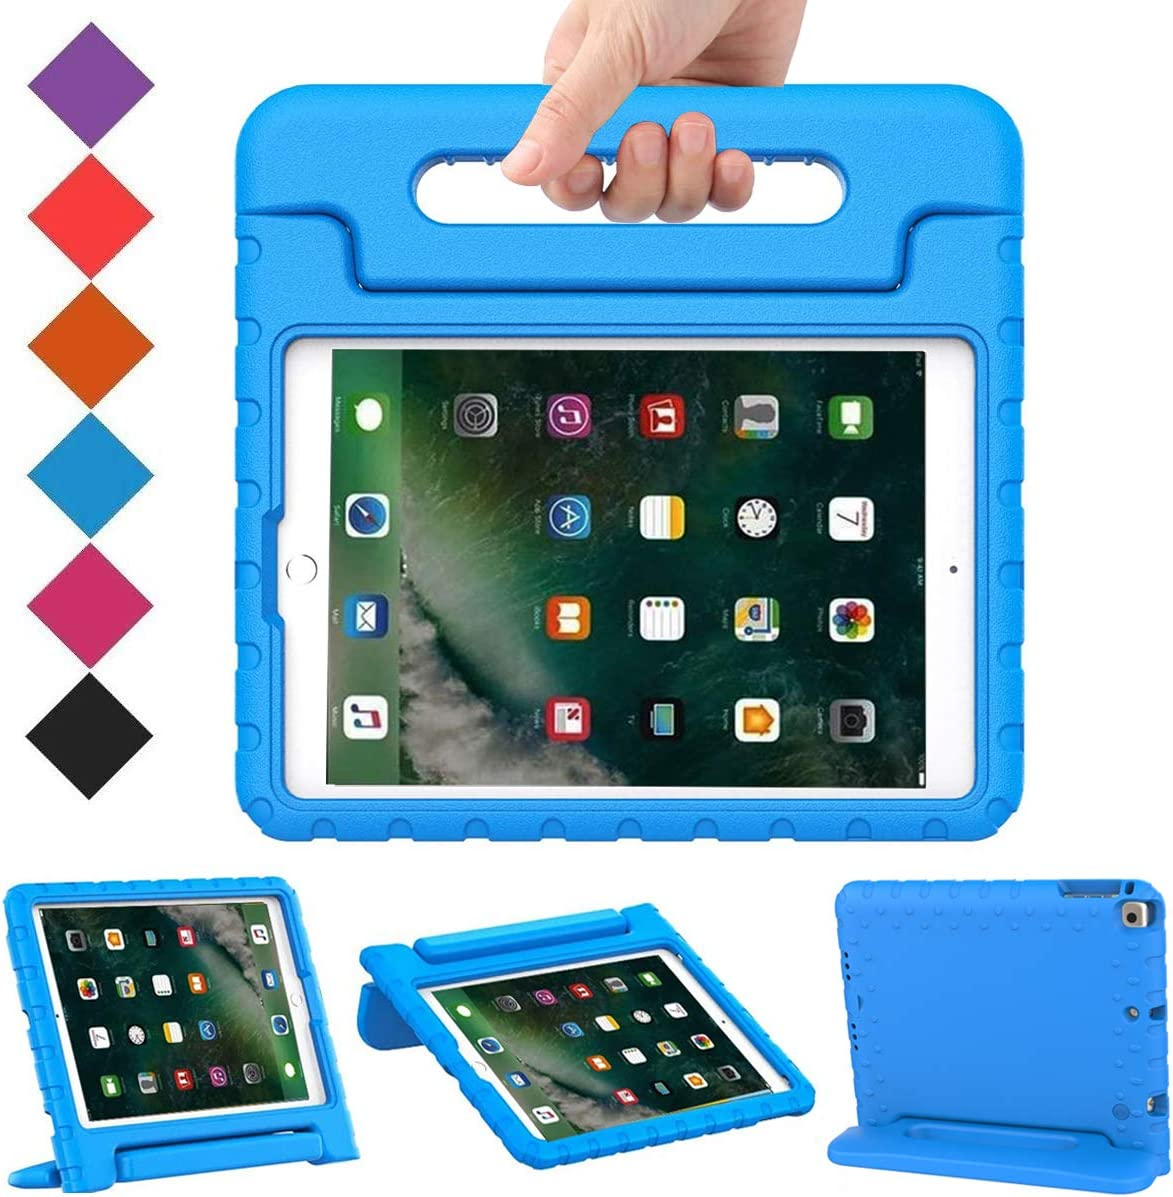 Top 15 Best iPad Case For Kid (2020 Reviews & Buying Guide) 11